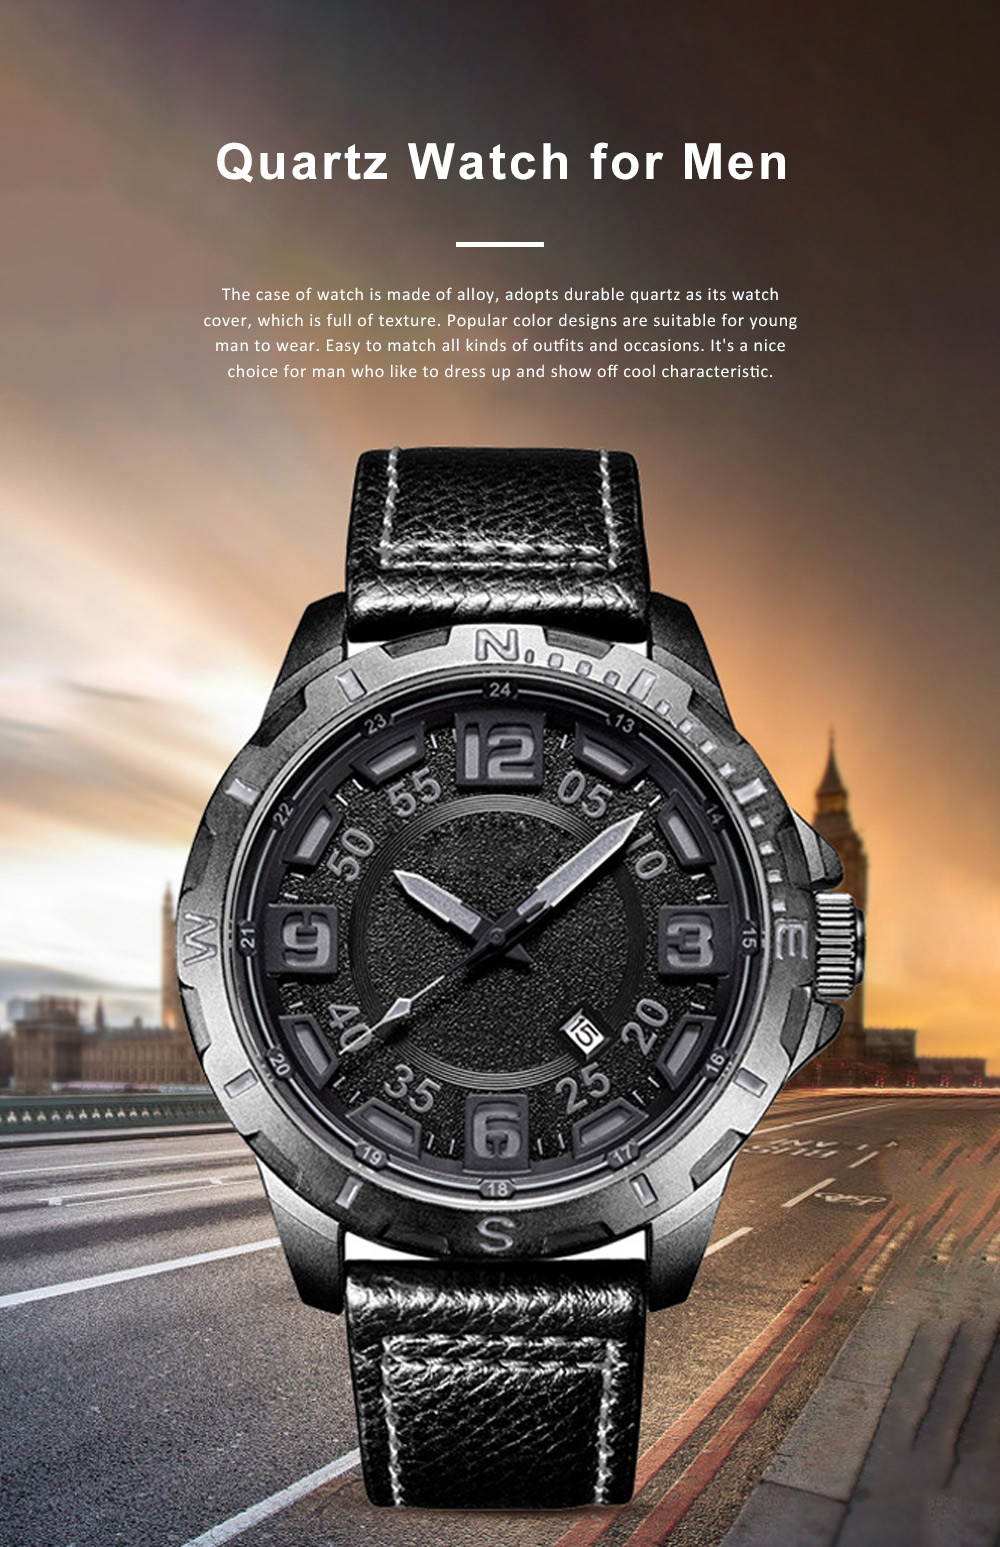 Casual Quartz Watch for Men Waterproof Quartz Watch With Stainless Steel Clasp Watch Leather Wrist Strap 0